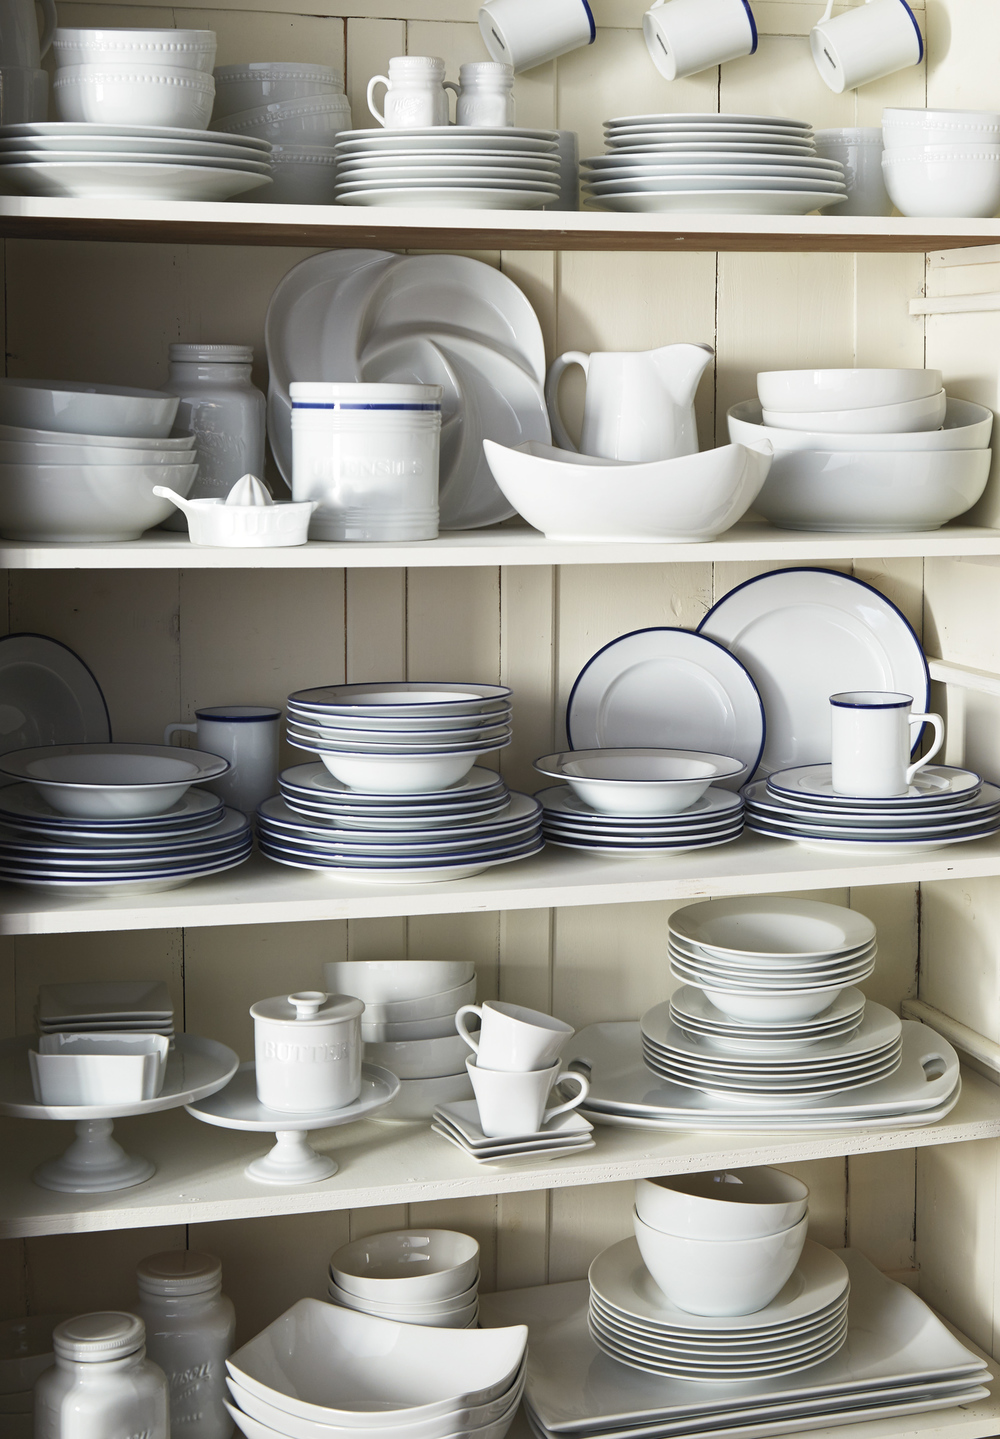 caulfield bbb dinnerware on shelves.jpg